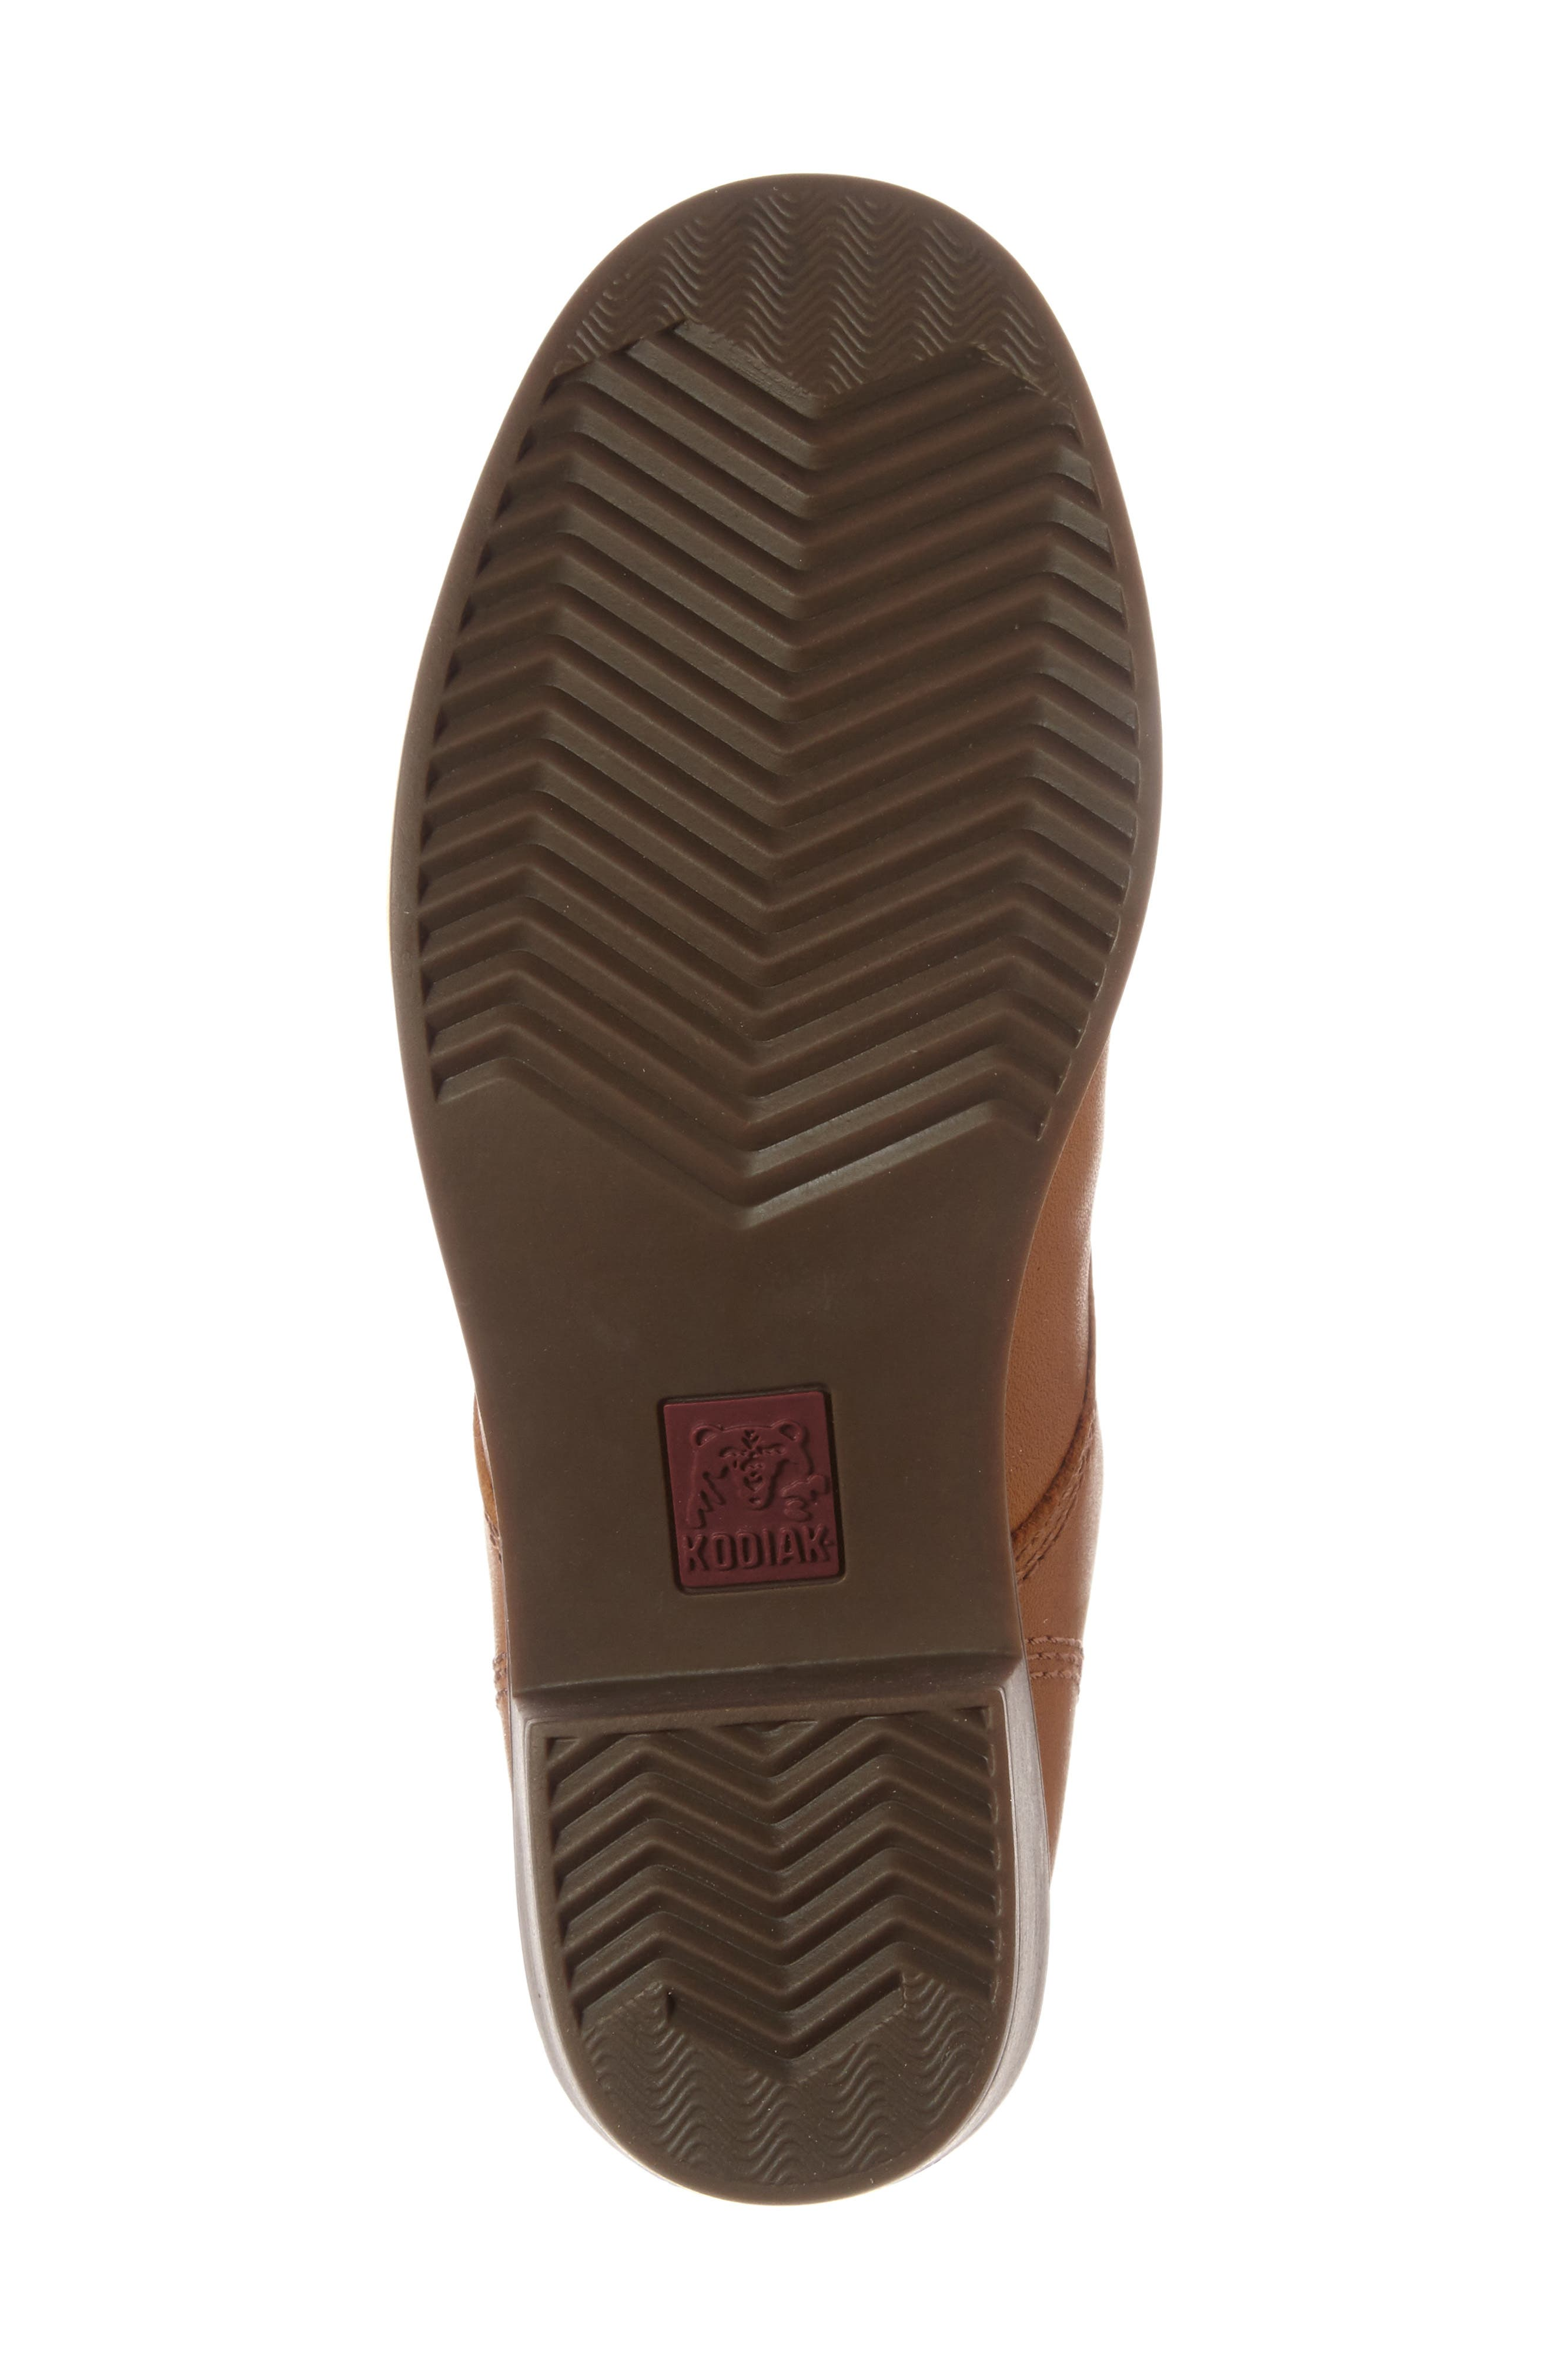 Claire Waterproof Bootie,                             Alternate thumbnail 4, color,                             Caramel Leather